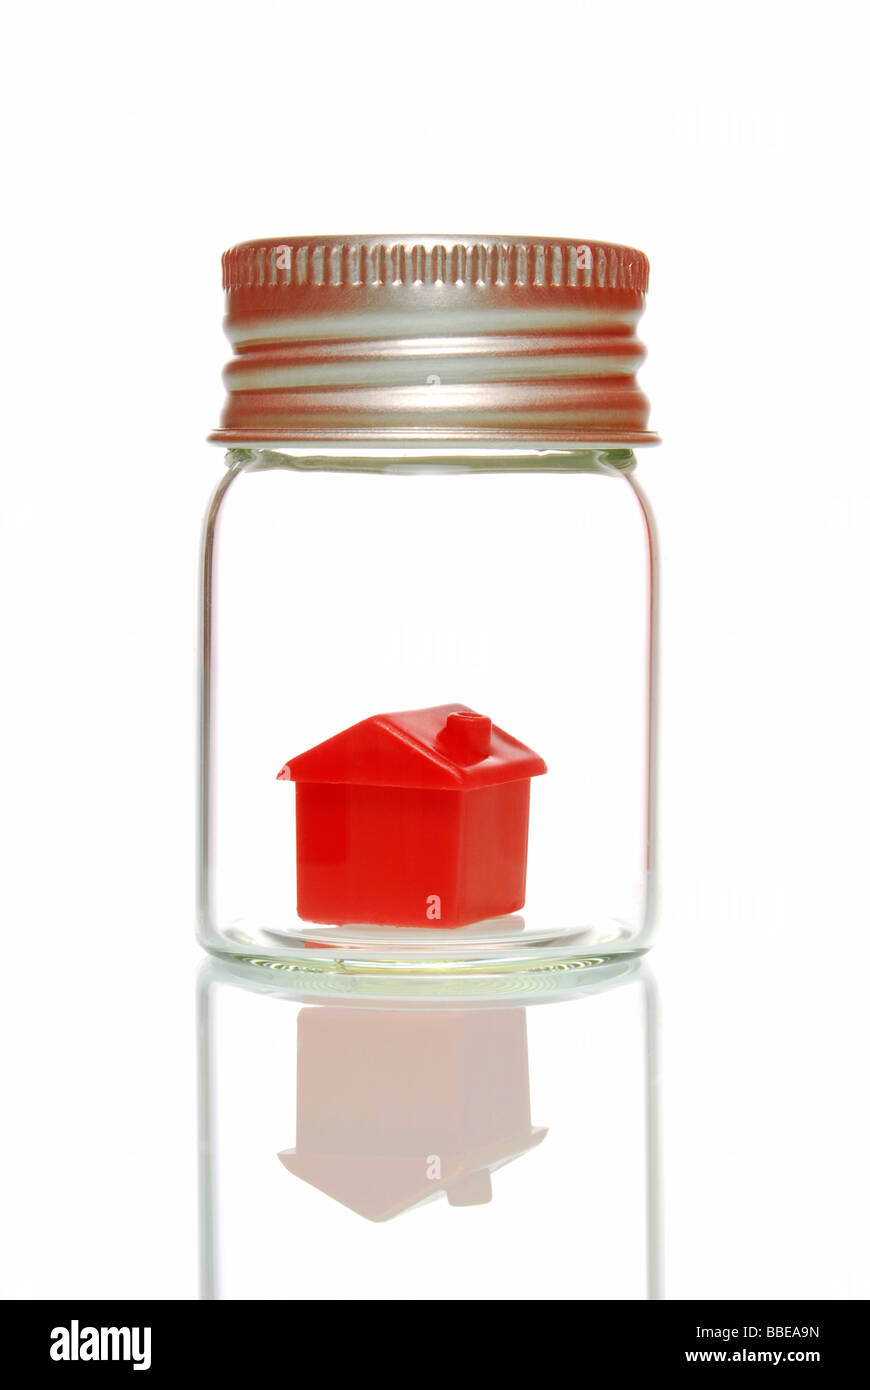 Miniature house in glass, symbolic for being protected, insurance - Stock Image